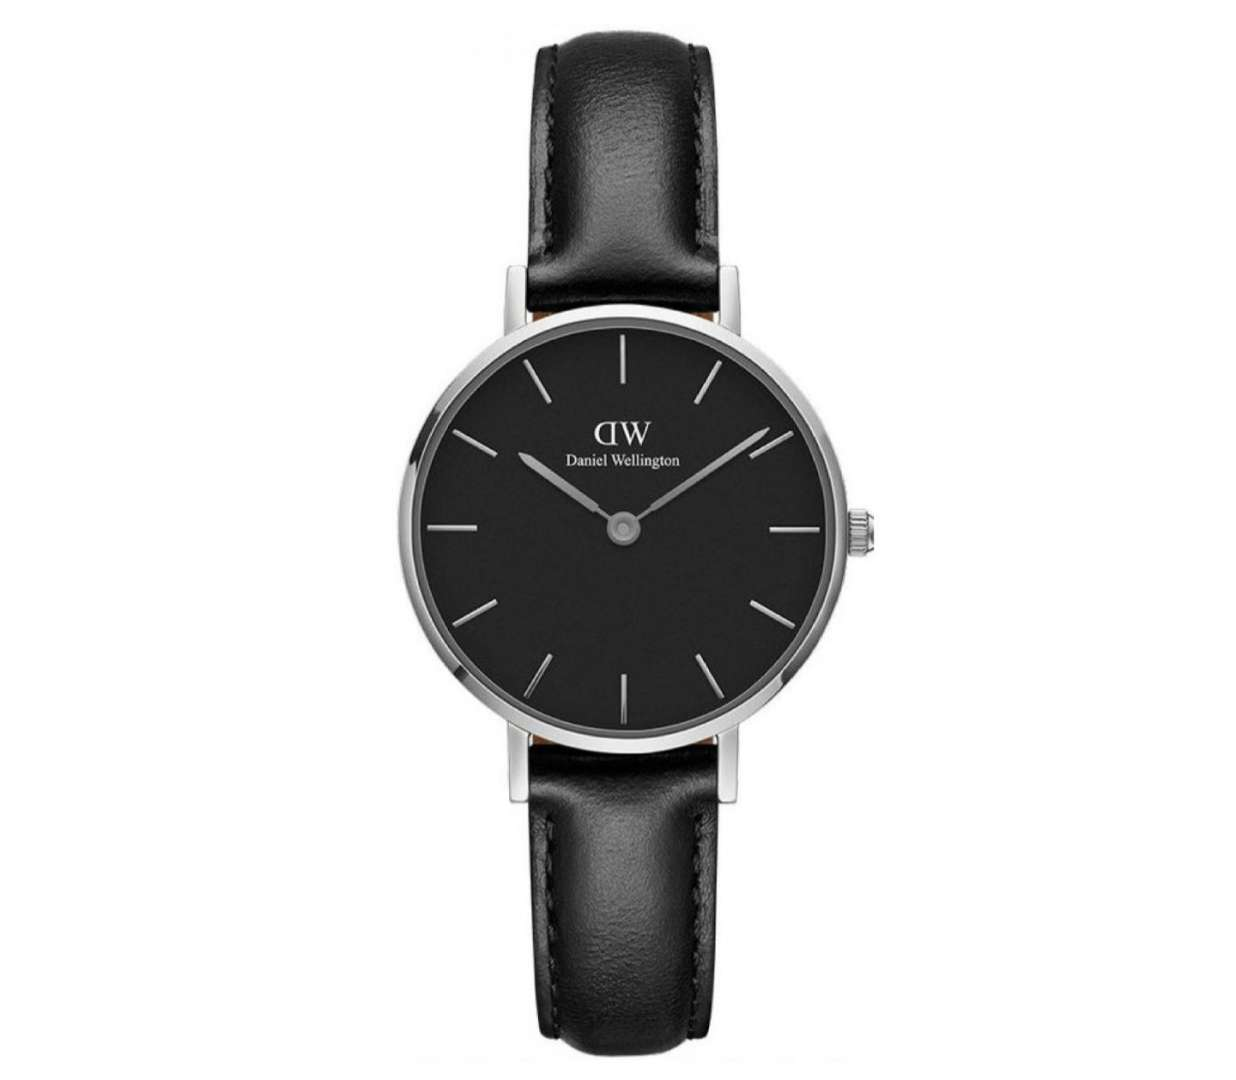 שעון יד אנלוגי daniel wellington DW00100236 דניאל וולינגטון